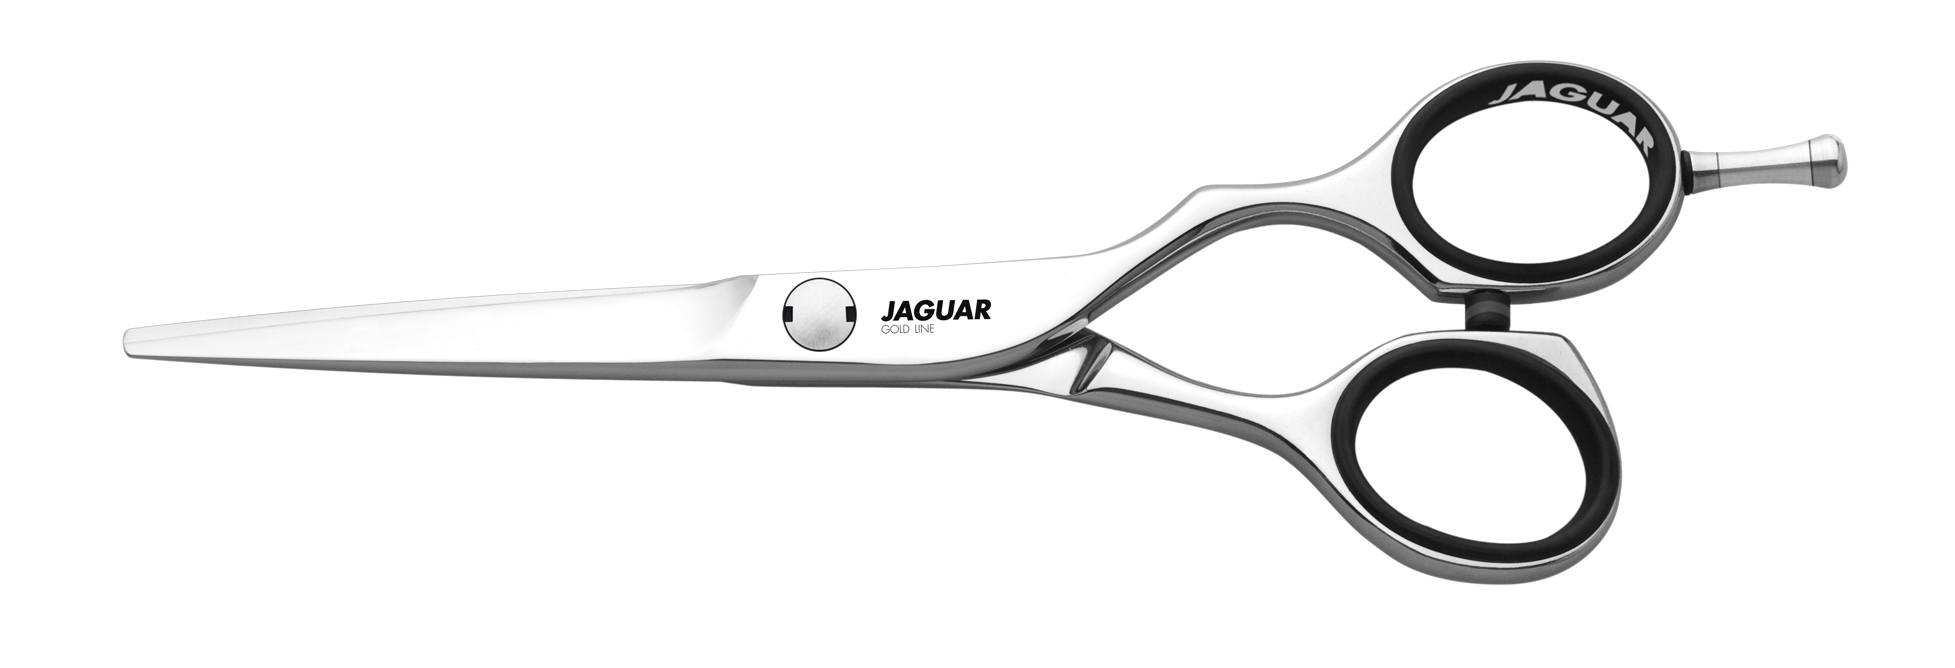 JAGUAR Ножницы Jaguar Diamond E 5,5'(14cm)GL ножницы 21150 2 diamond e design 5